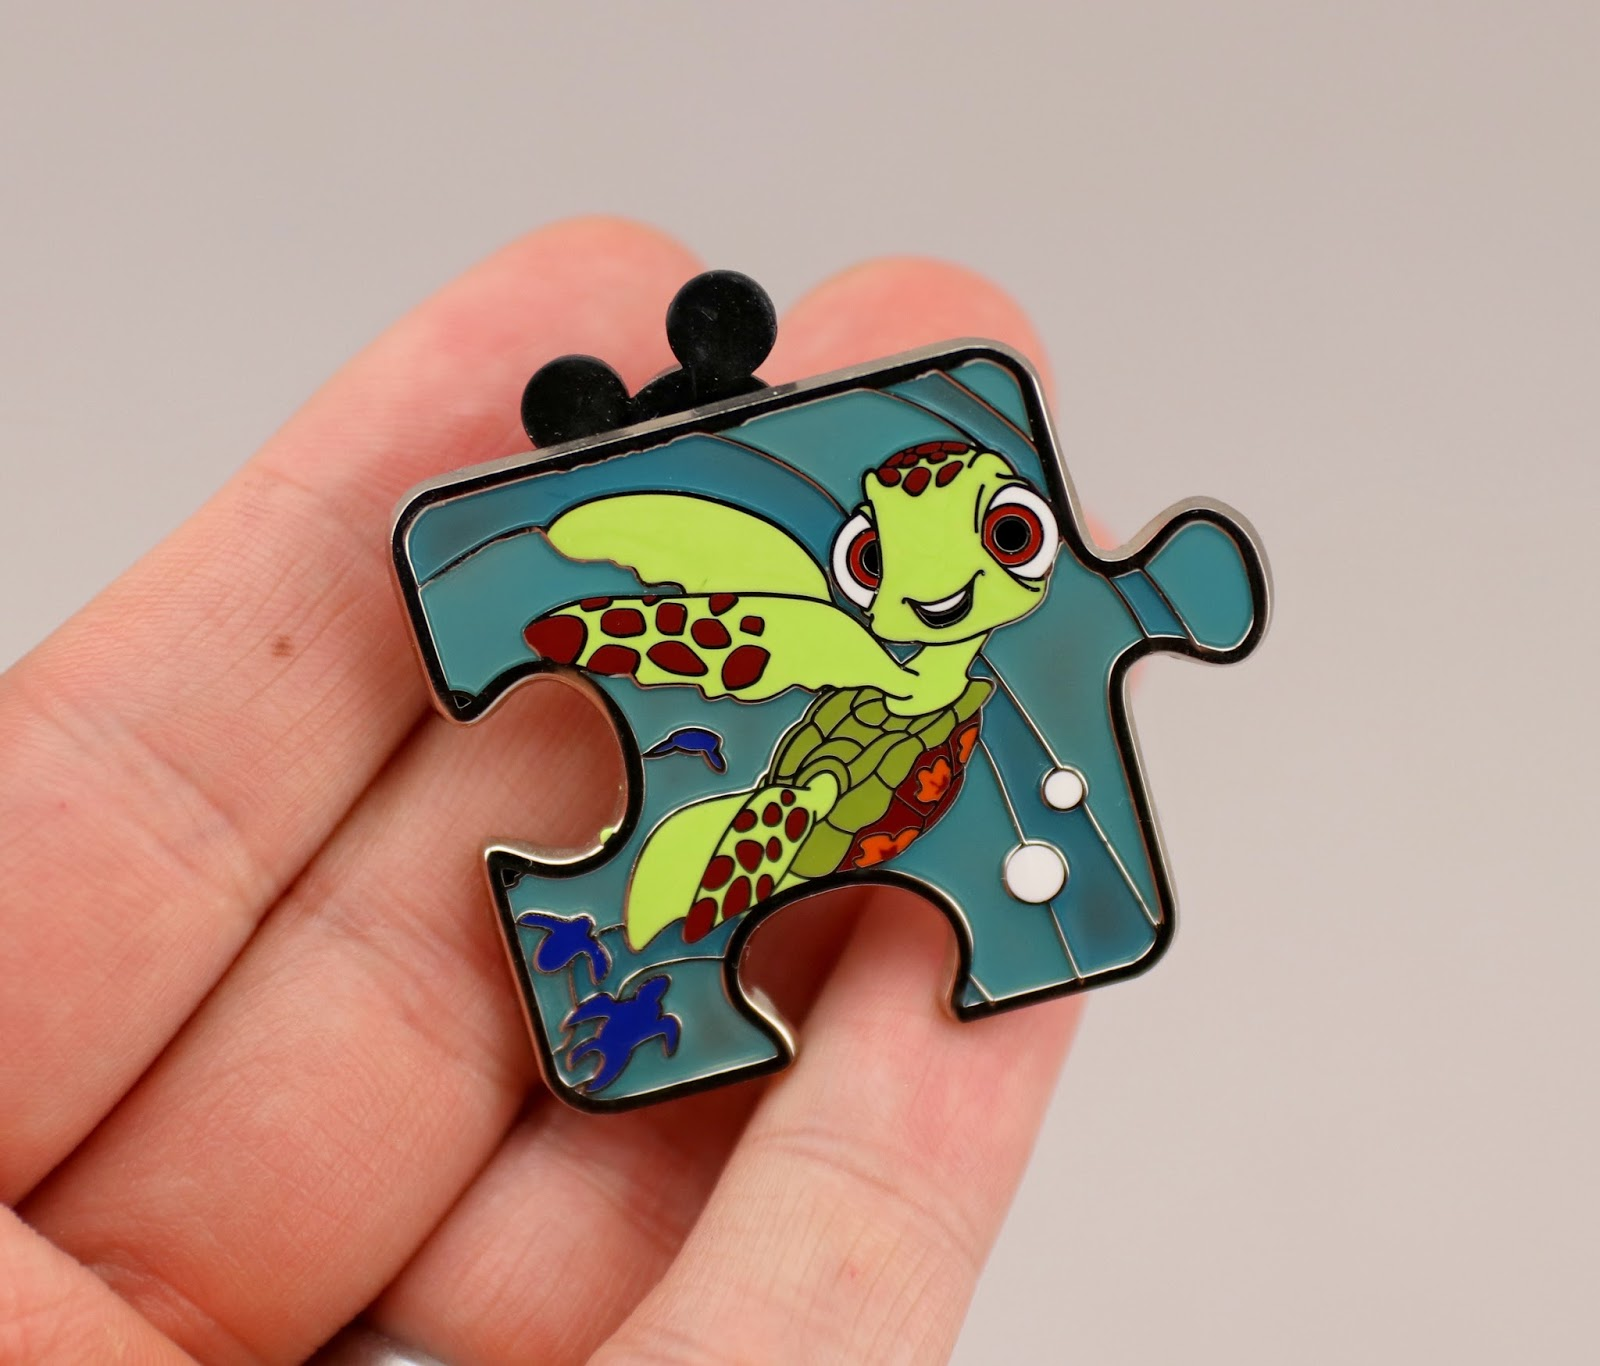 pixar finding nemo character connection pin squirt